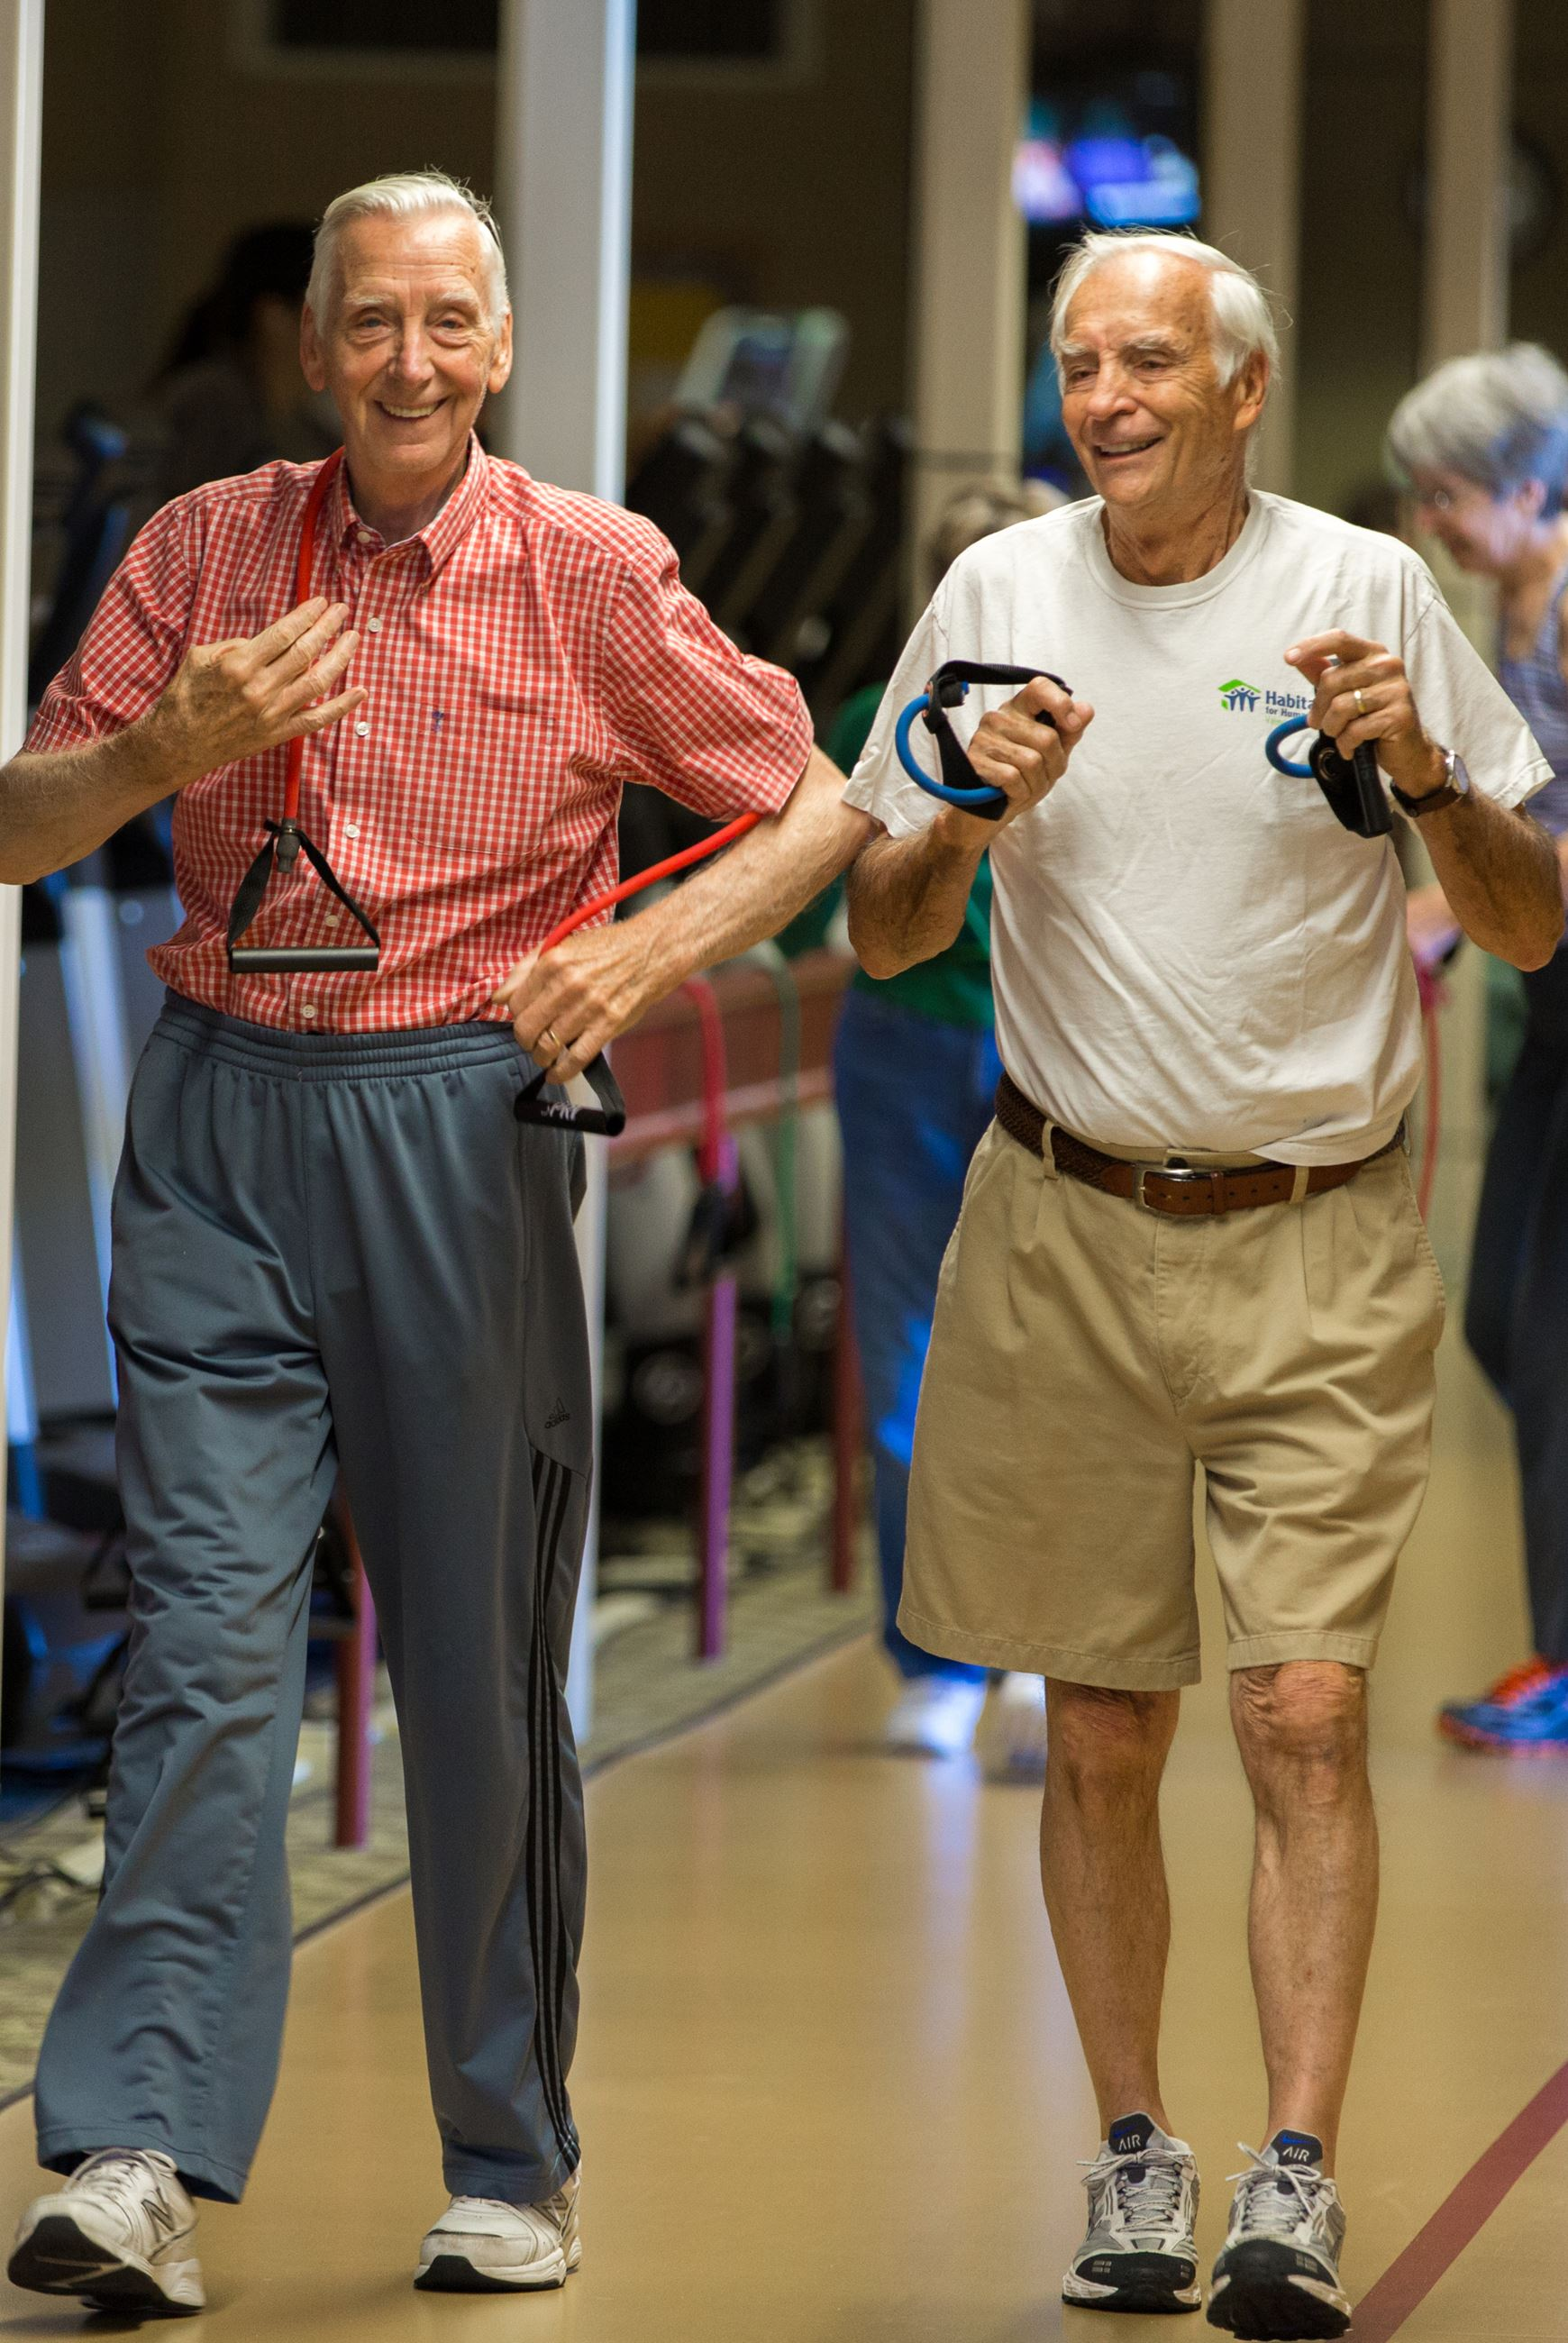 Walk and Weights - two men walking on an indoor track